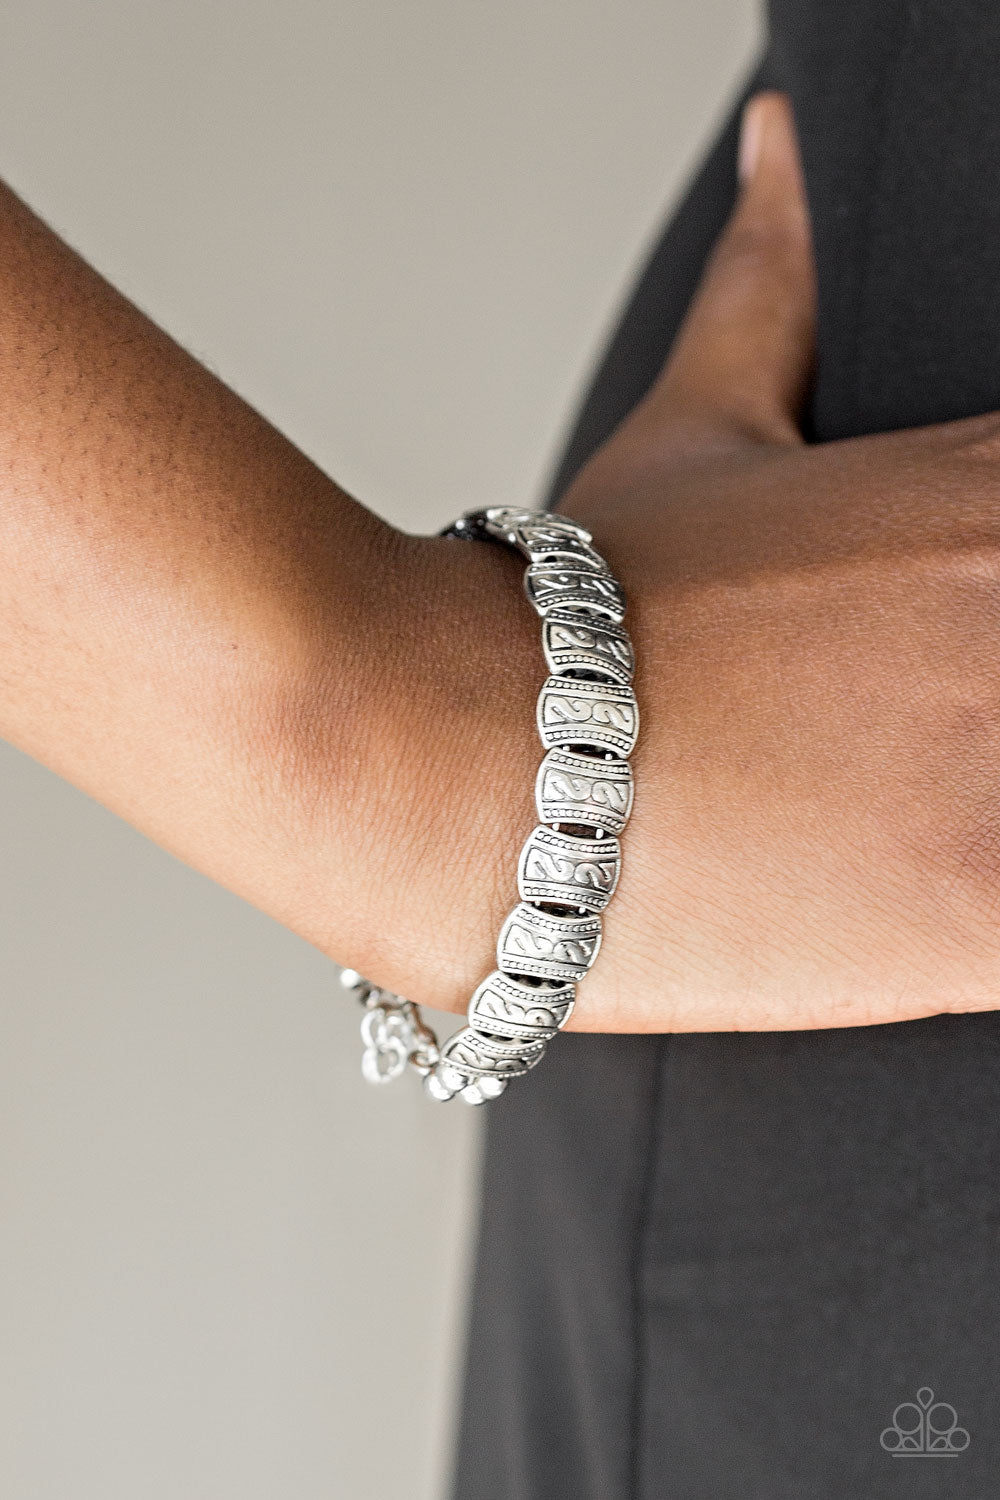 Embossed in tribal inspired patterns, dainty silver frames are threaded along a silver wire and wrapped around the wrist for a seasonal look. Features an adjustable clasp closure.  Sold as one individual bracelet.  Always nickel and lead free.